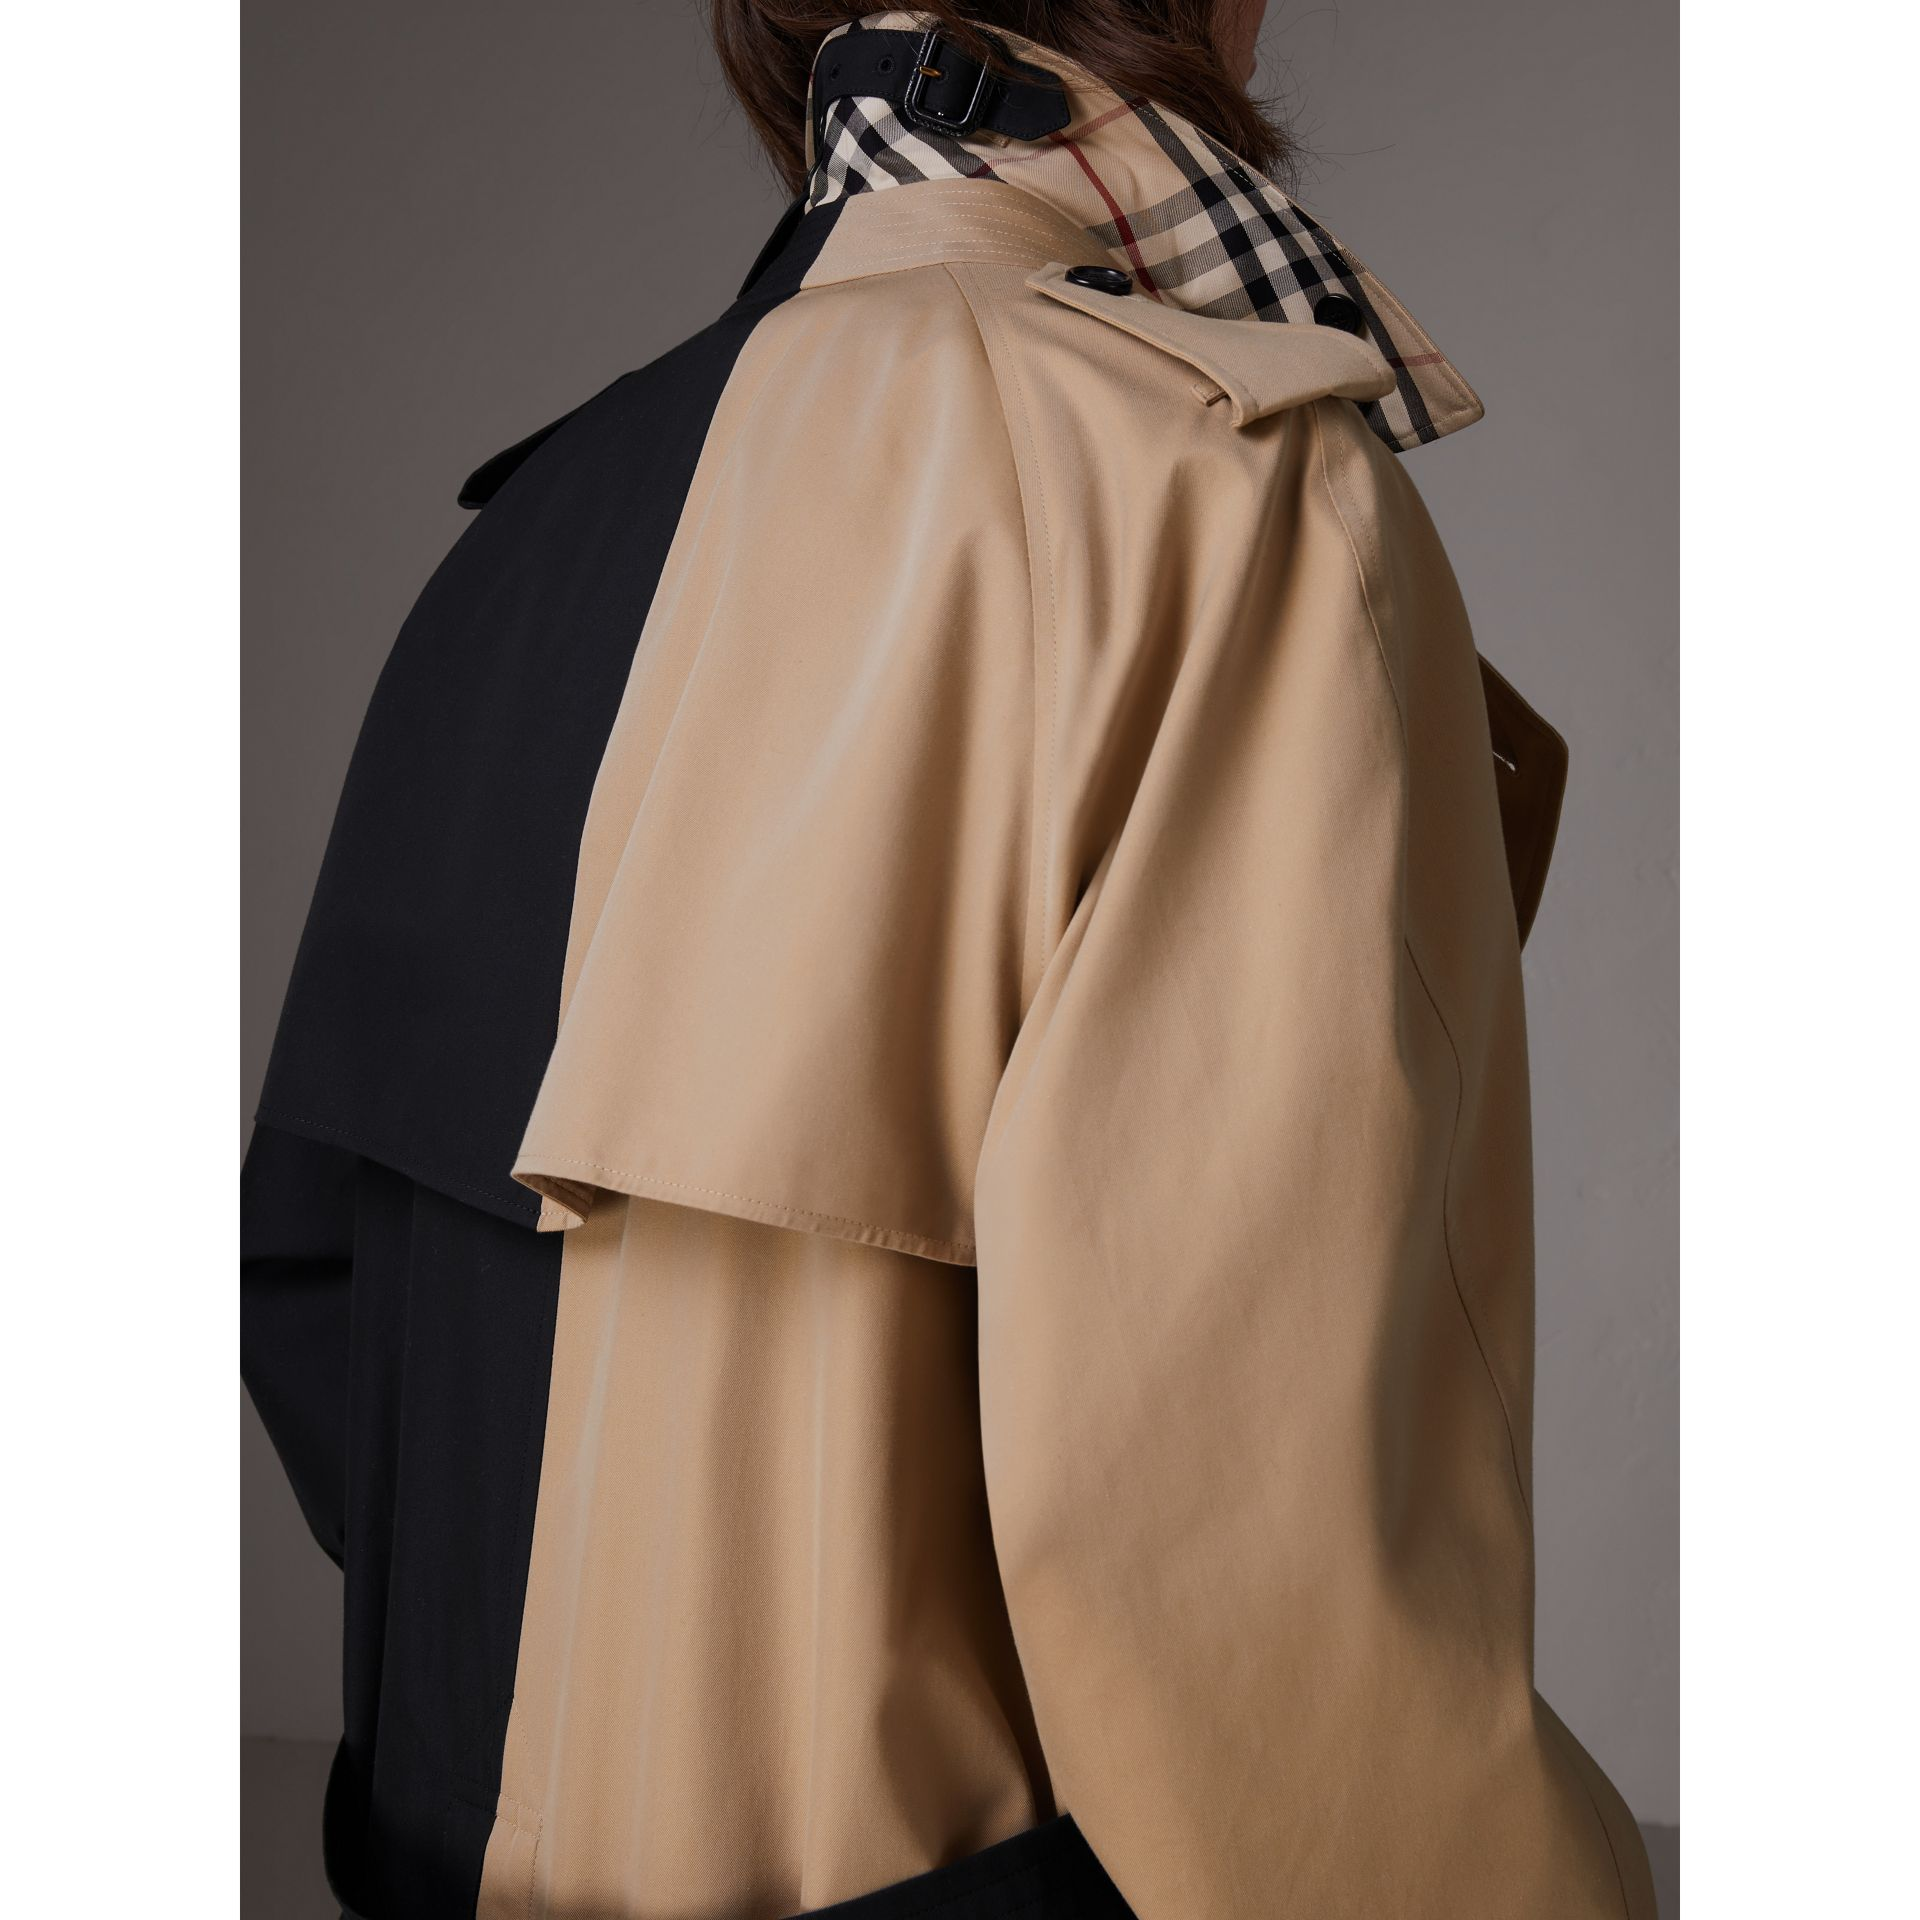 Gosha x Burberry Two-tone Trench Coat in Honey | Burberry United Kingdom - gallery image 5